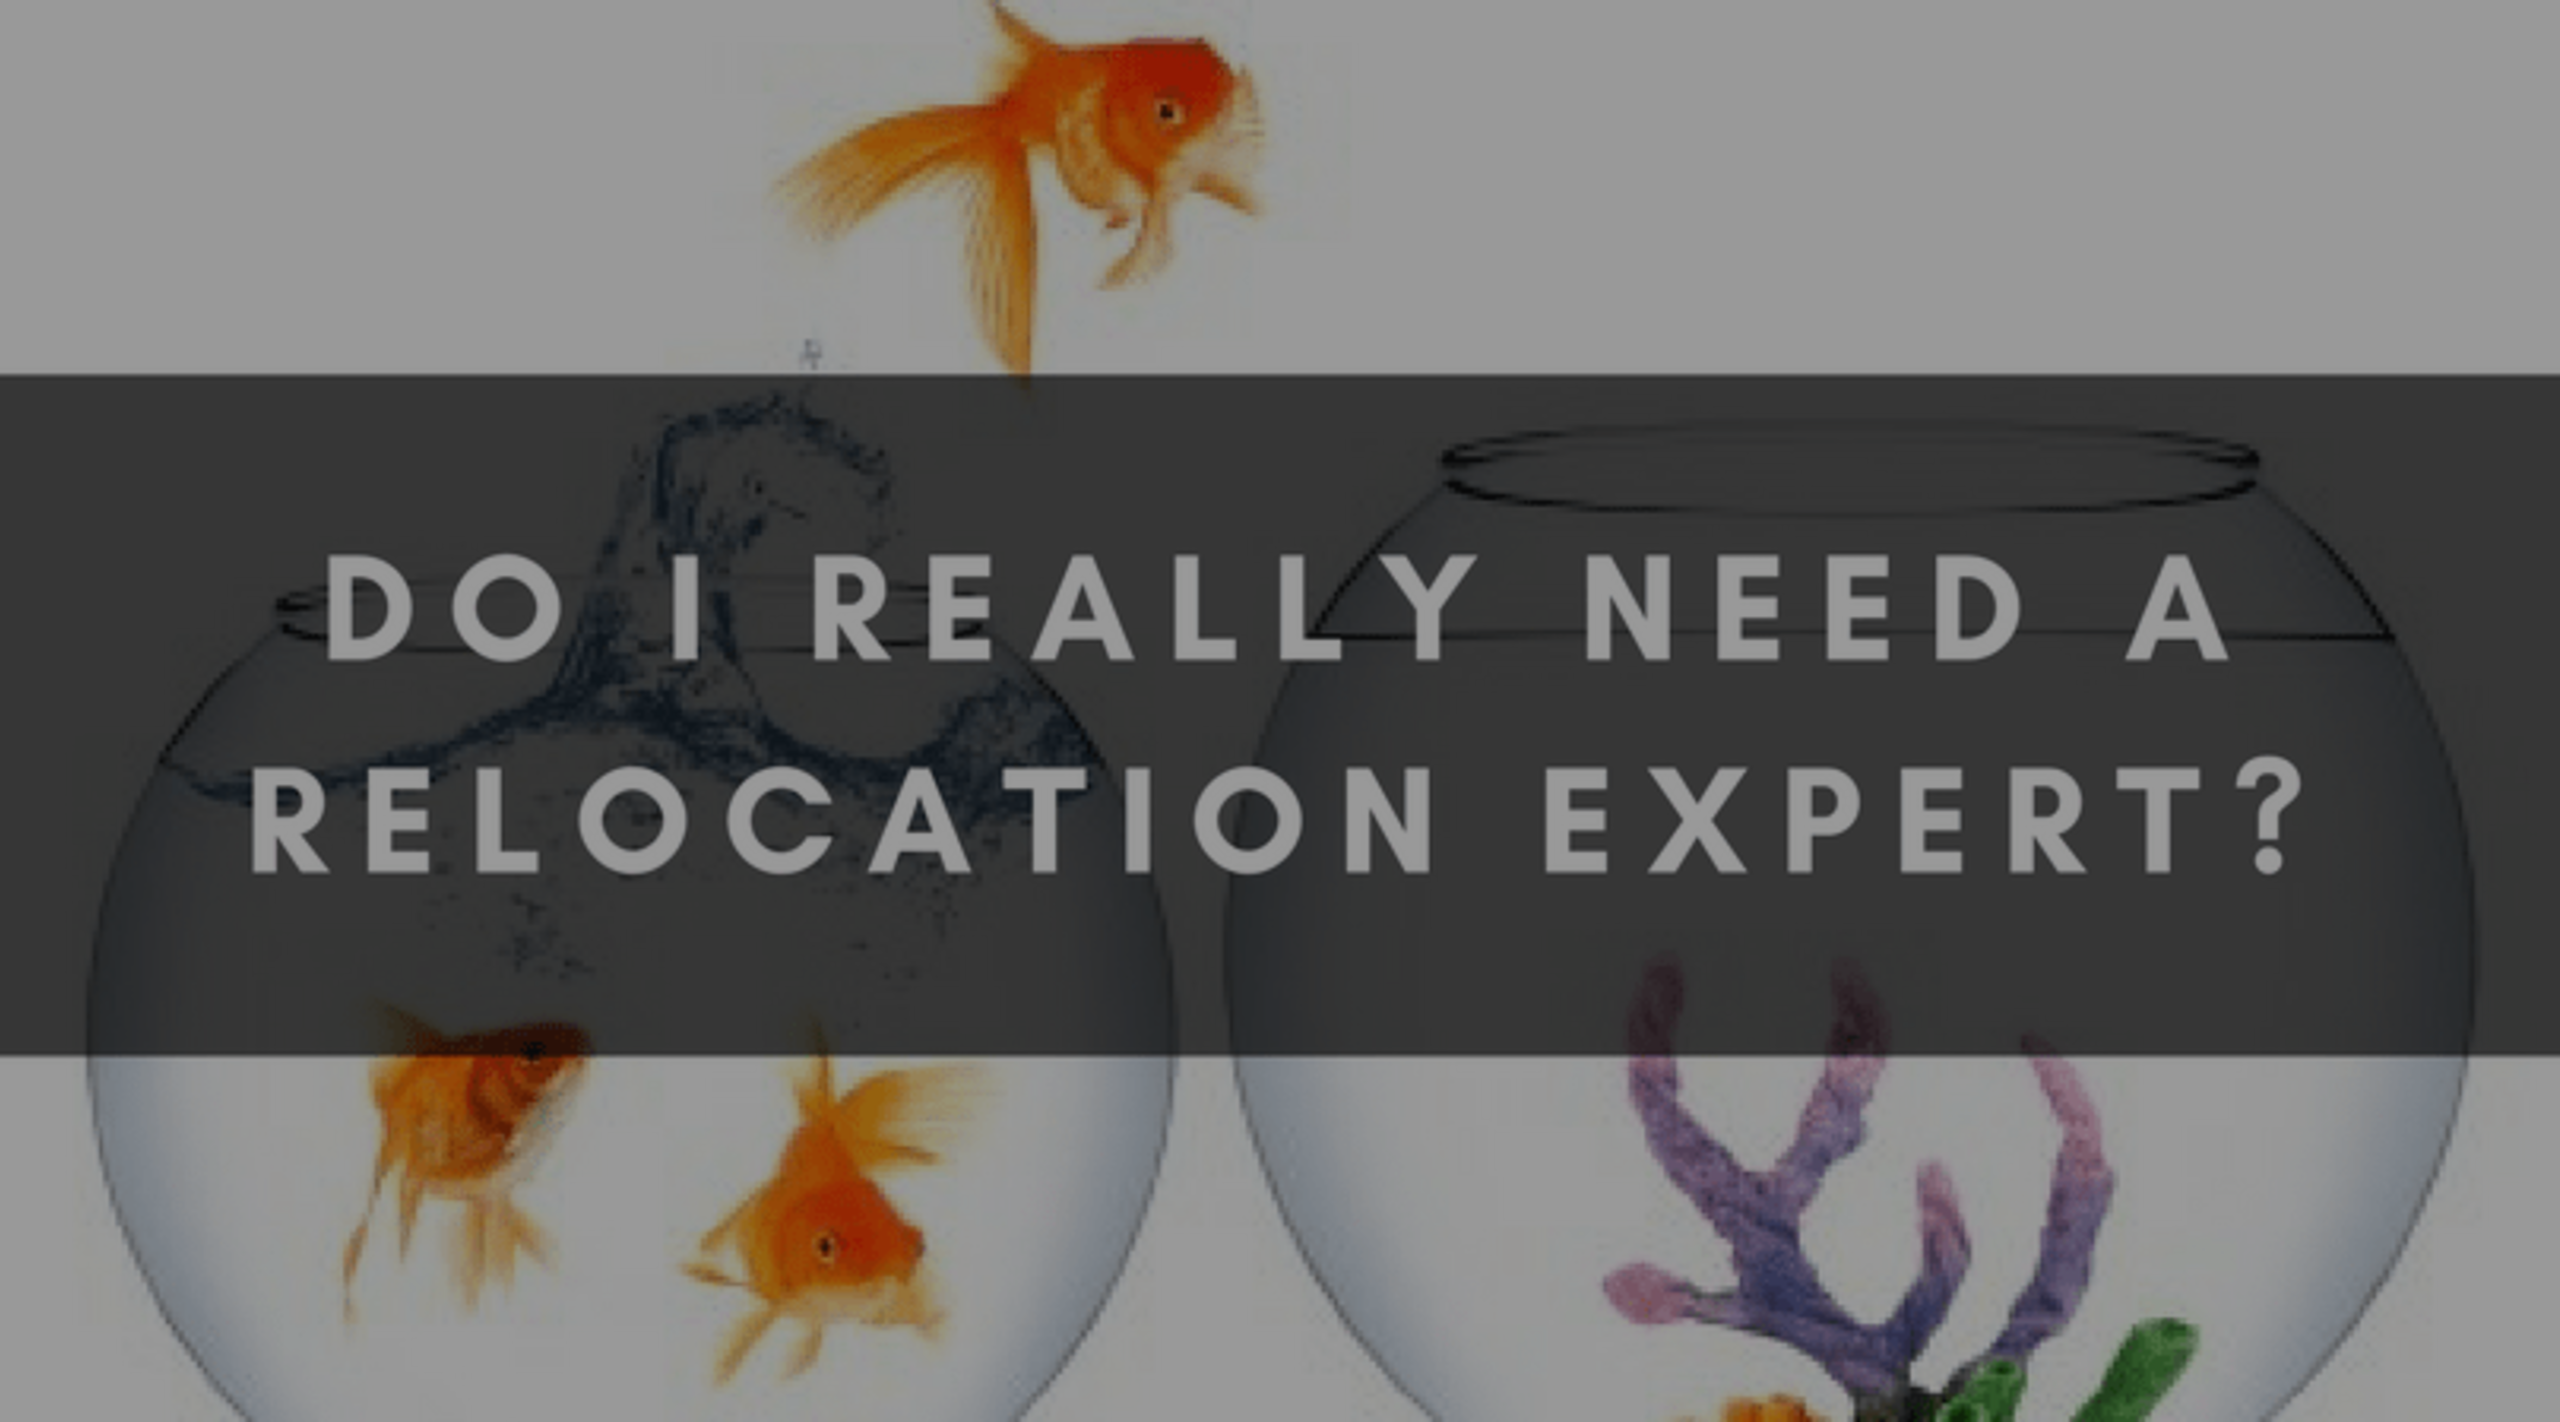 DO I REALLY NEED A RELOCATION EXPERT?